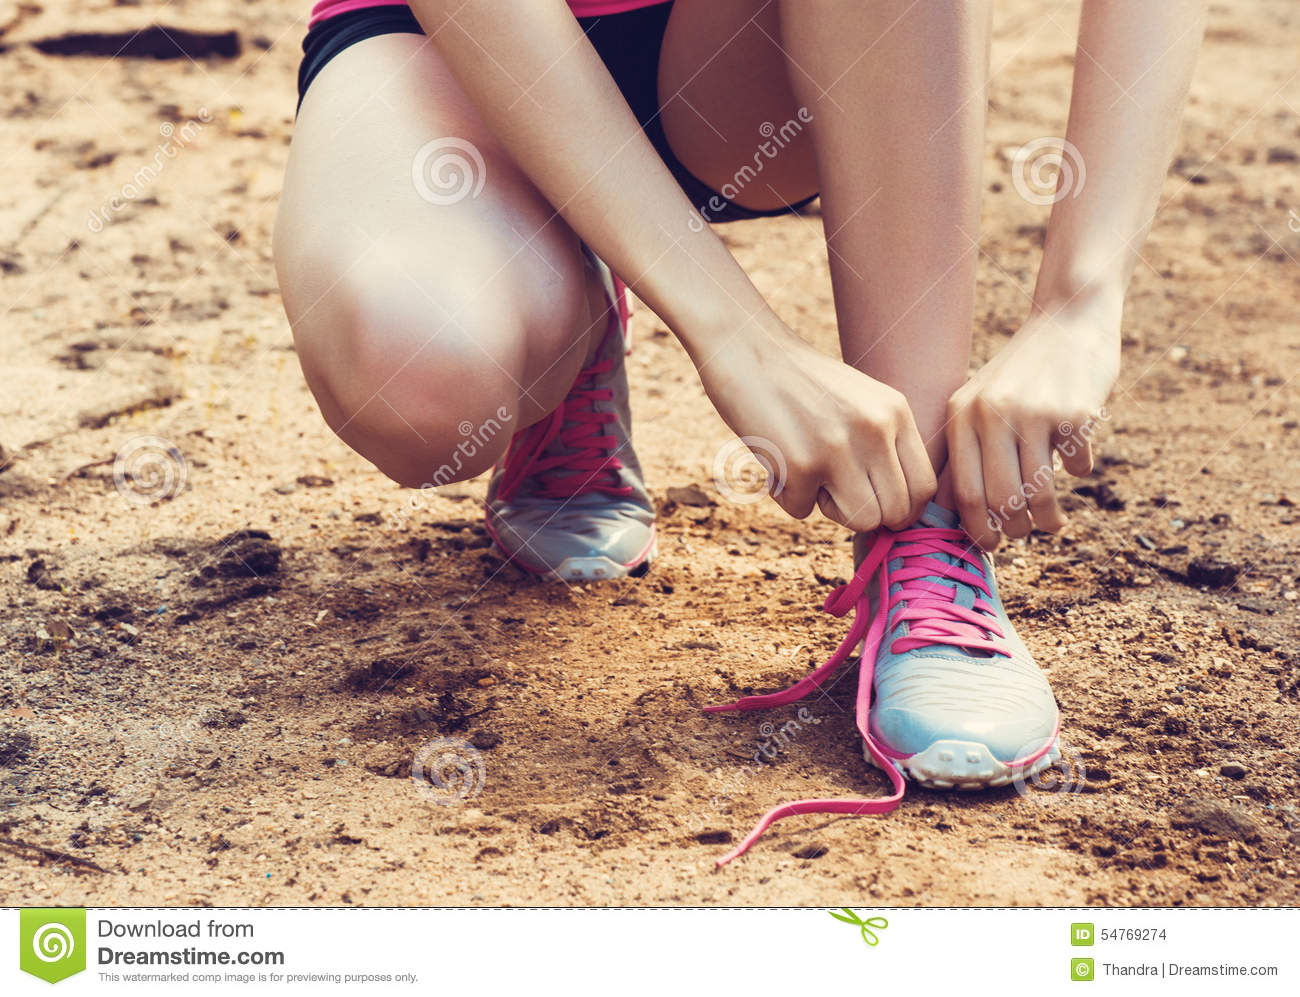 Closeup of woman tying shoe laces. Female sport fitness runner getting ready for jogging outdoors on forest path i